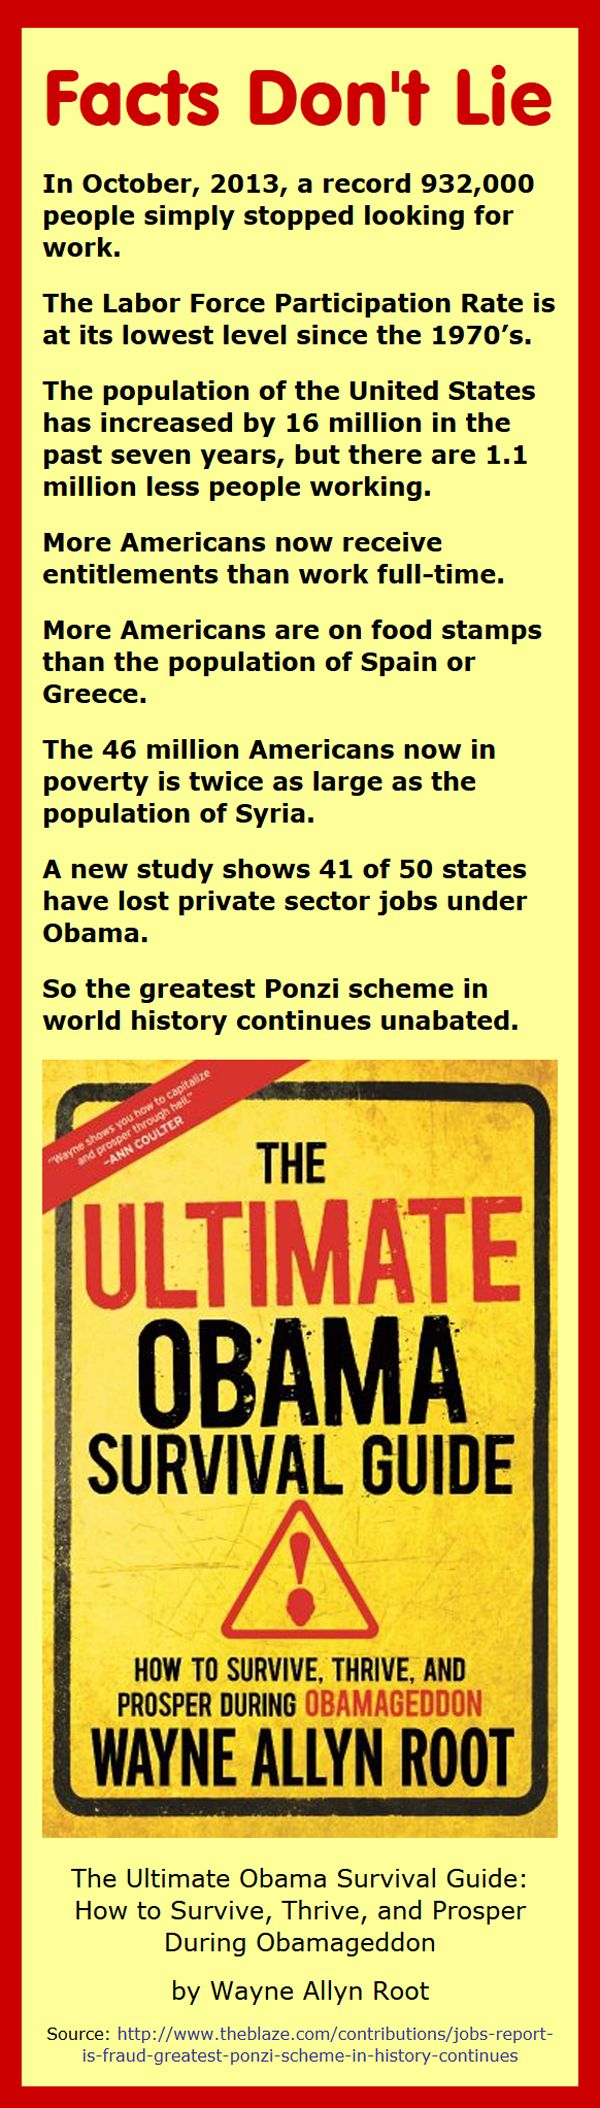 More Americans are on food stamps than the population of Spain or Greece. The 46 million Americans now in poverty is twice as large as the population of Syria. A new study shows 41 of 50 states have lost private sector jobs under Obama. So the greatest Ponzi scheme in world history continues unabated. Source: The Ultimate Obama Survival Guide: How to Survive, Thrive, and Prosper During Obamageddon by Wayne Allyn Root